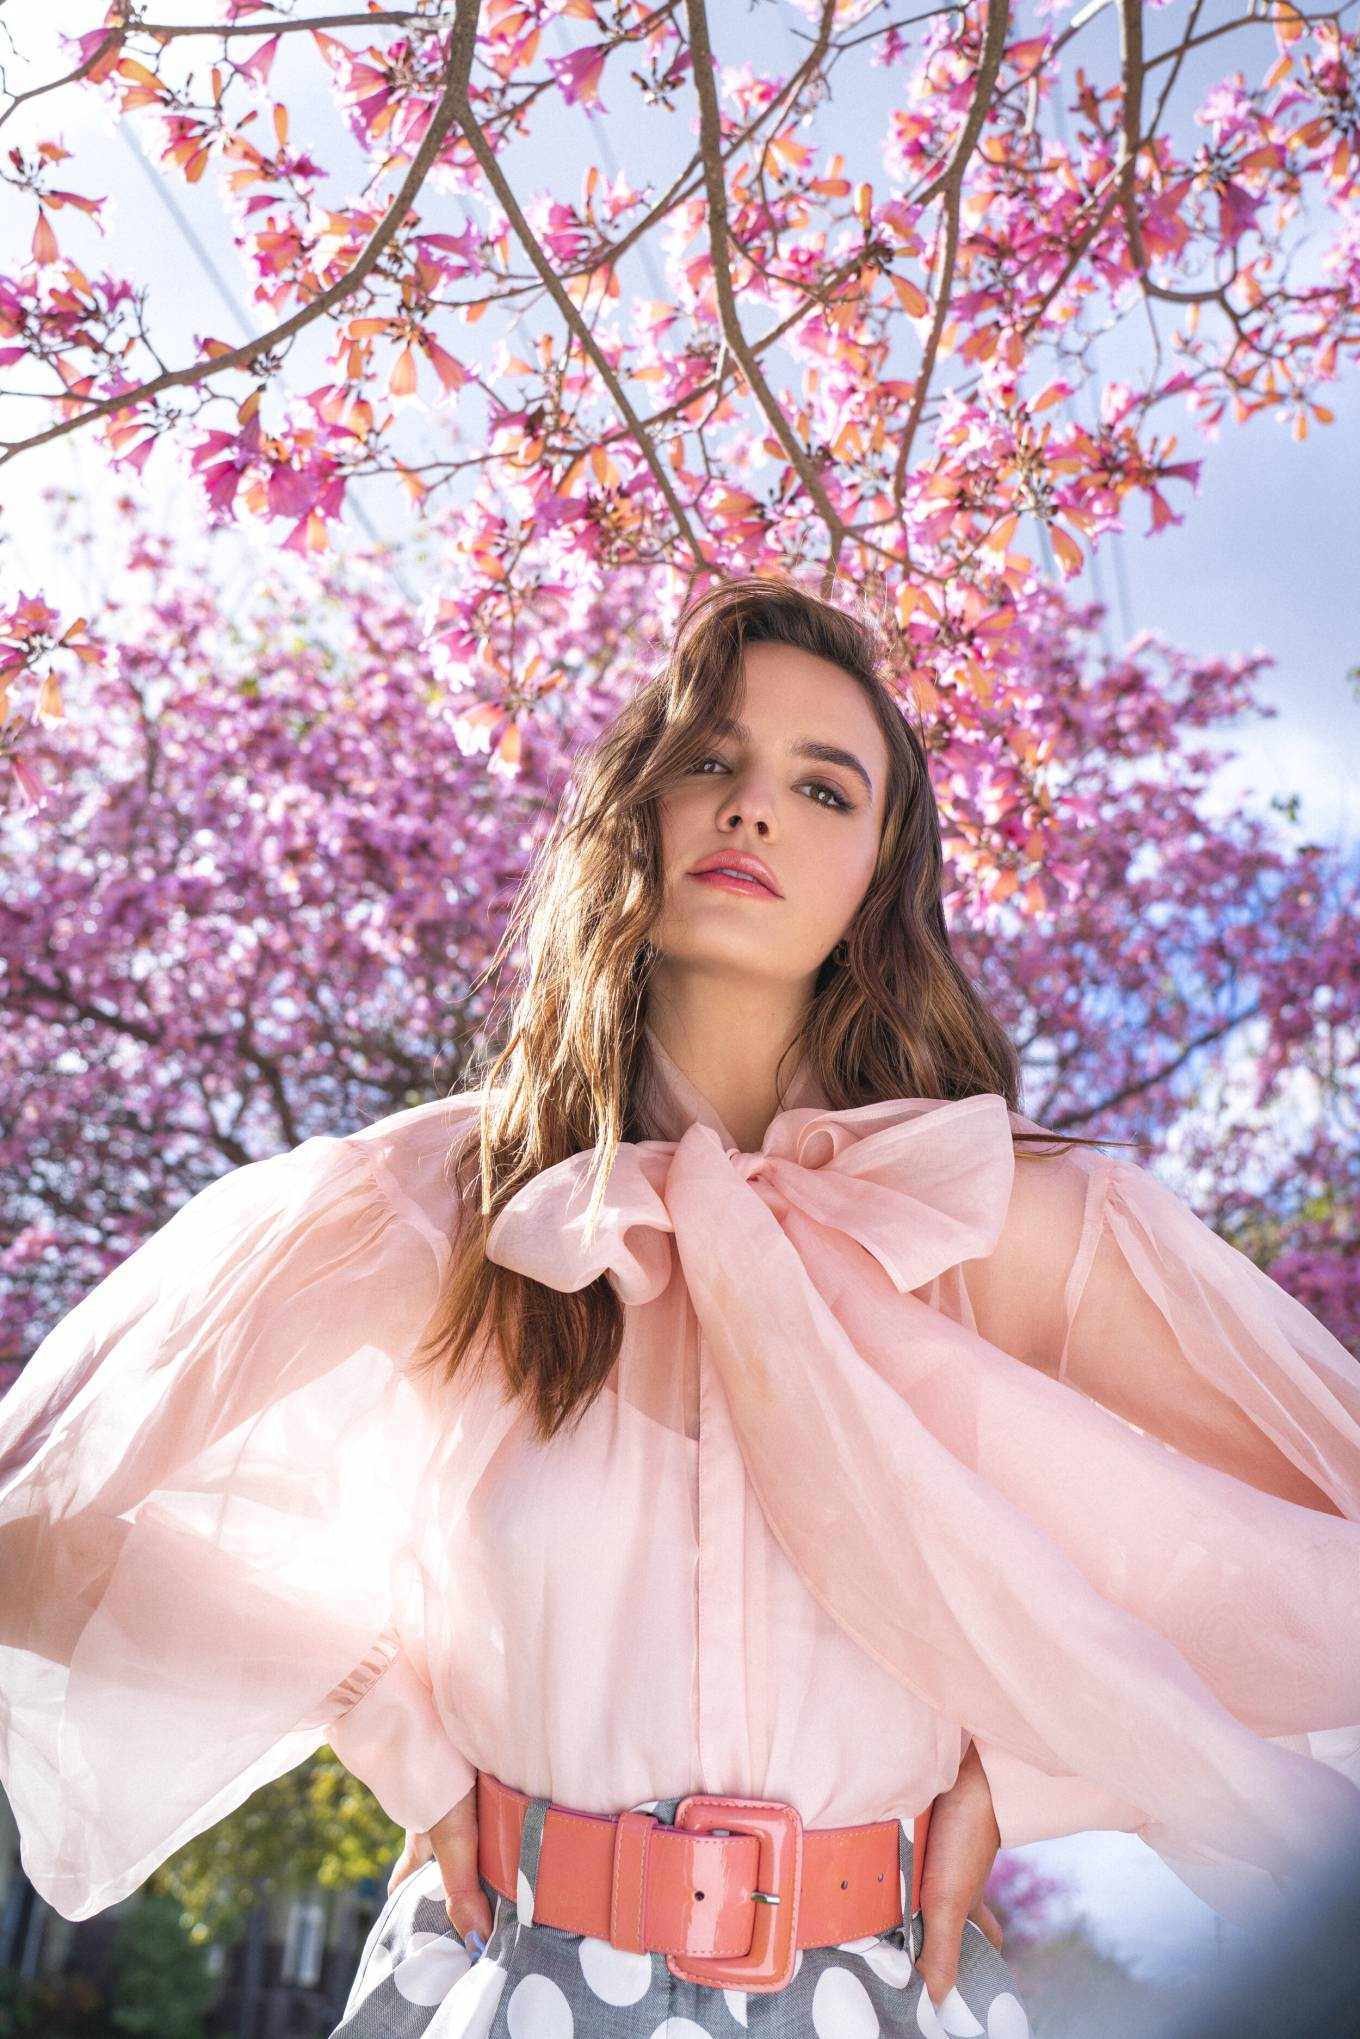 Bailee Madison 2021 : Bailee Madison – Cibelle Levi photoshoot for Rose and Ivy Journal (April 2021)-09